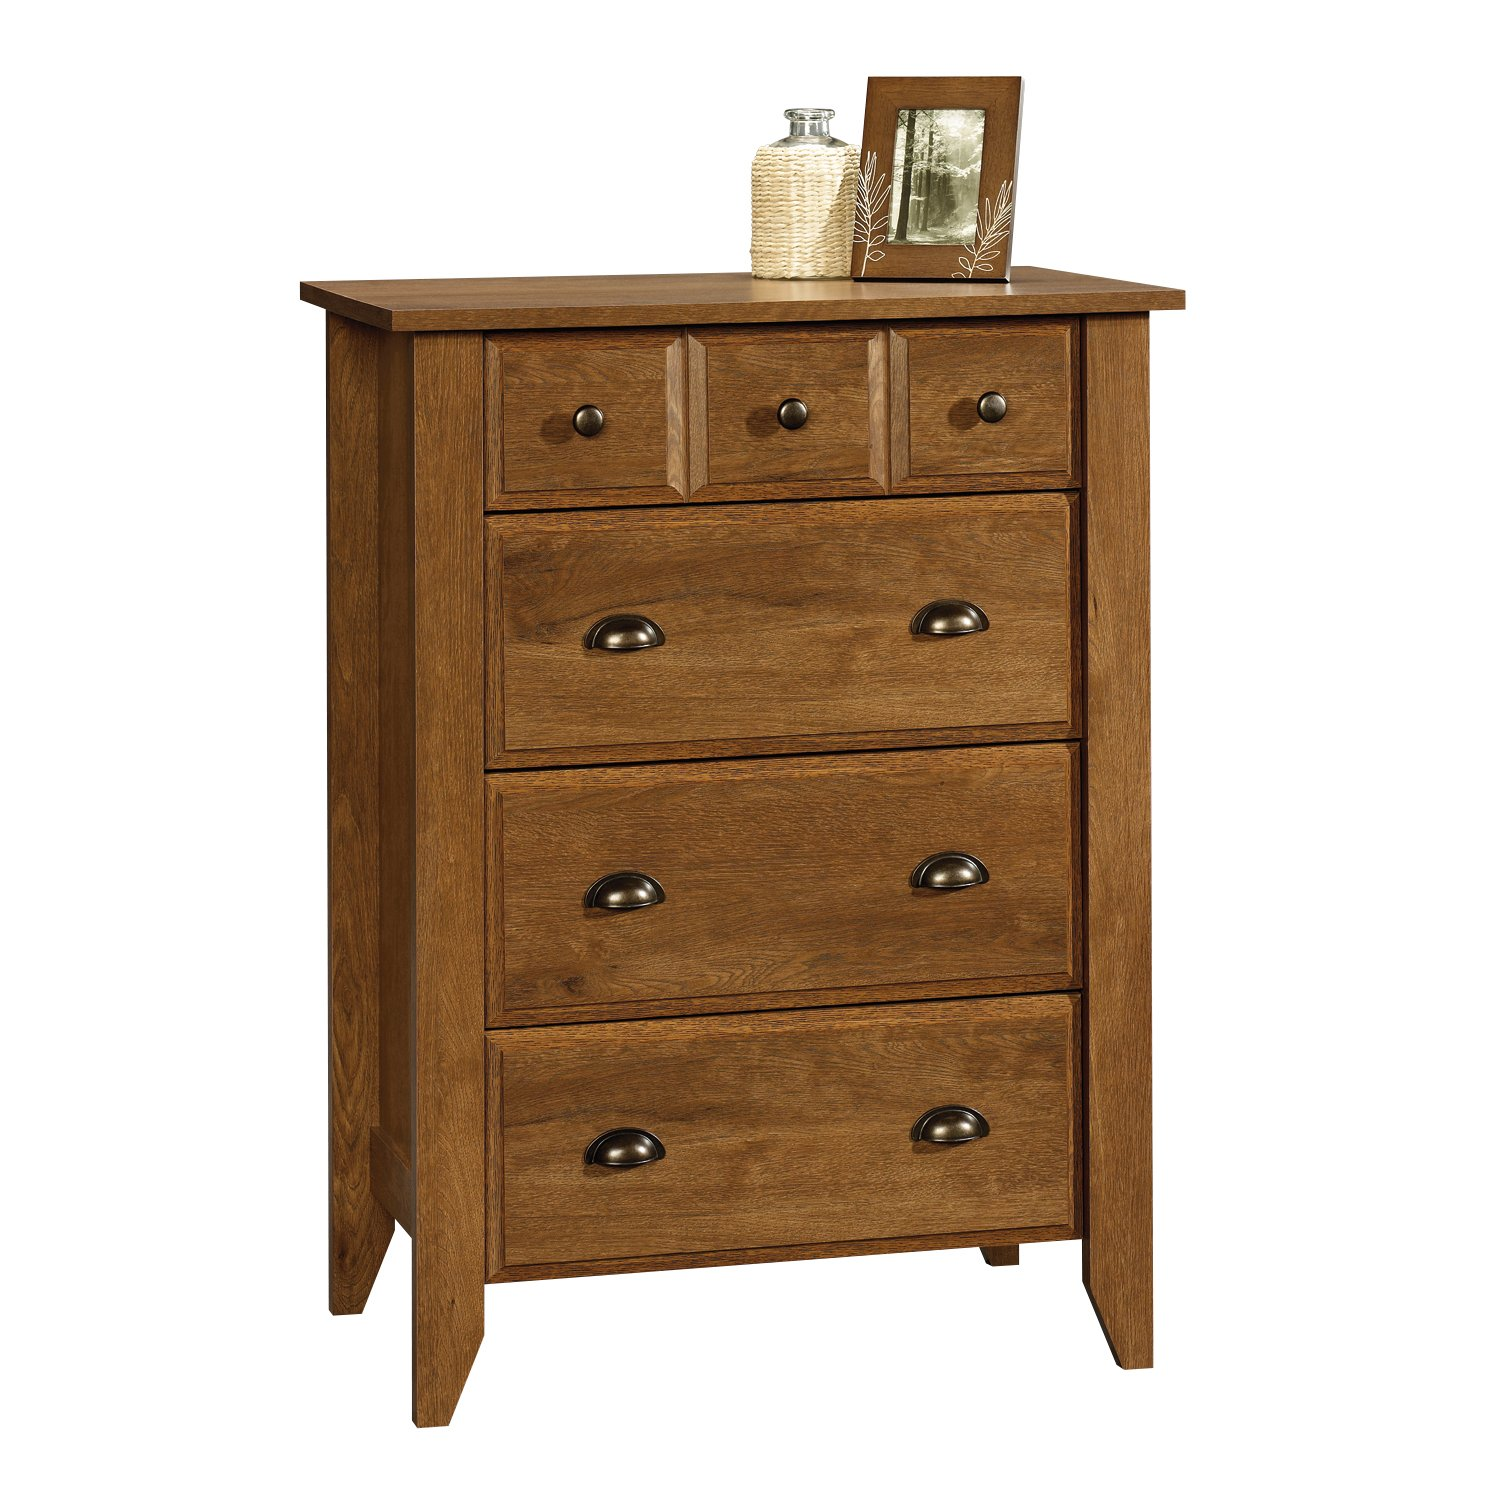 Sauder Shoal Creek 4-Drawer Chest, Jamocha Wood 409714